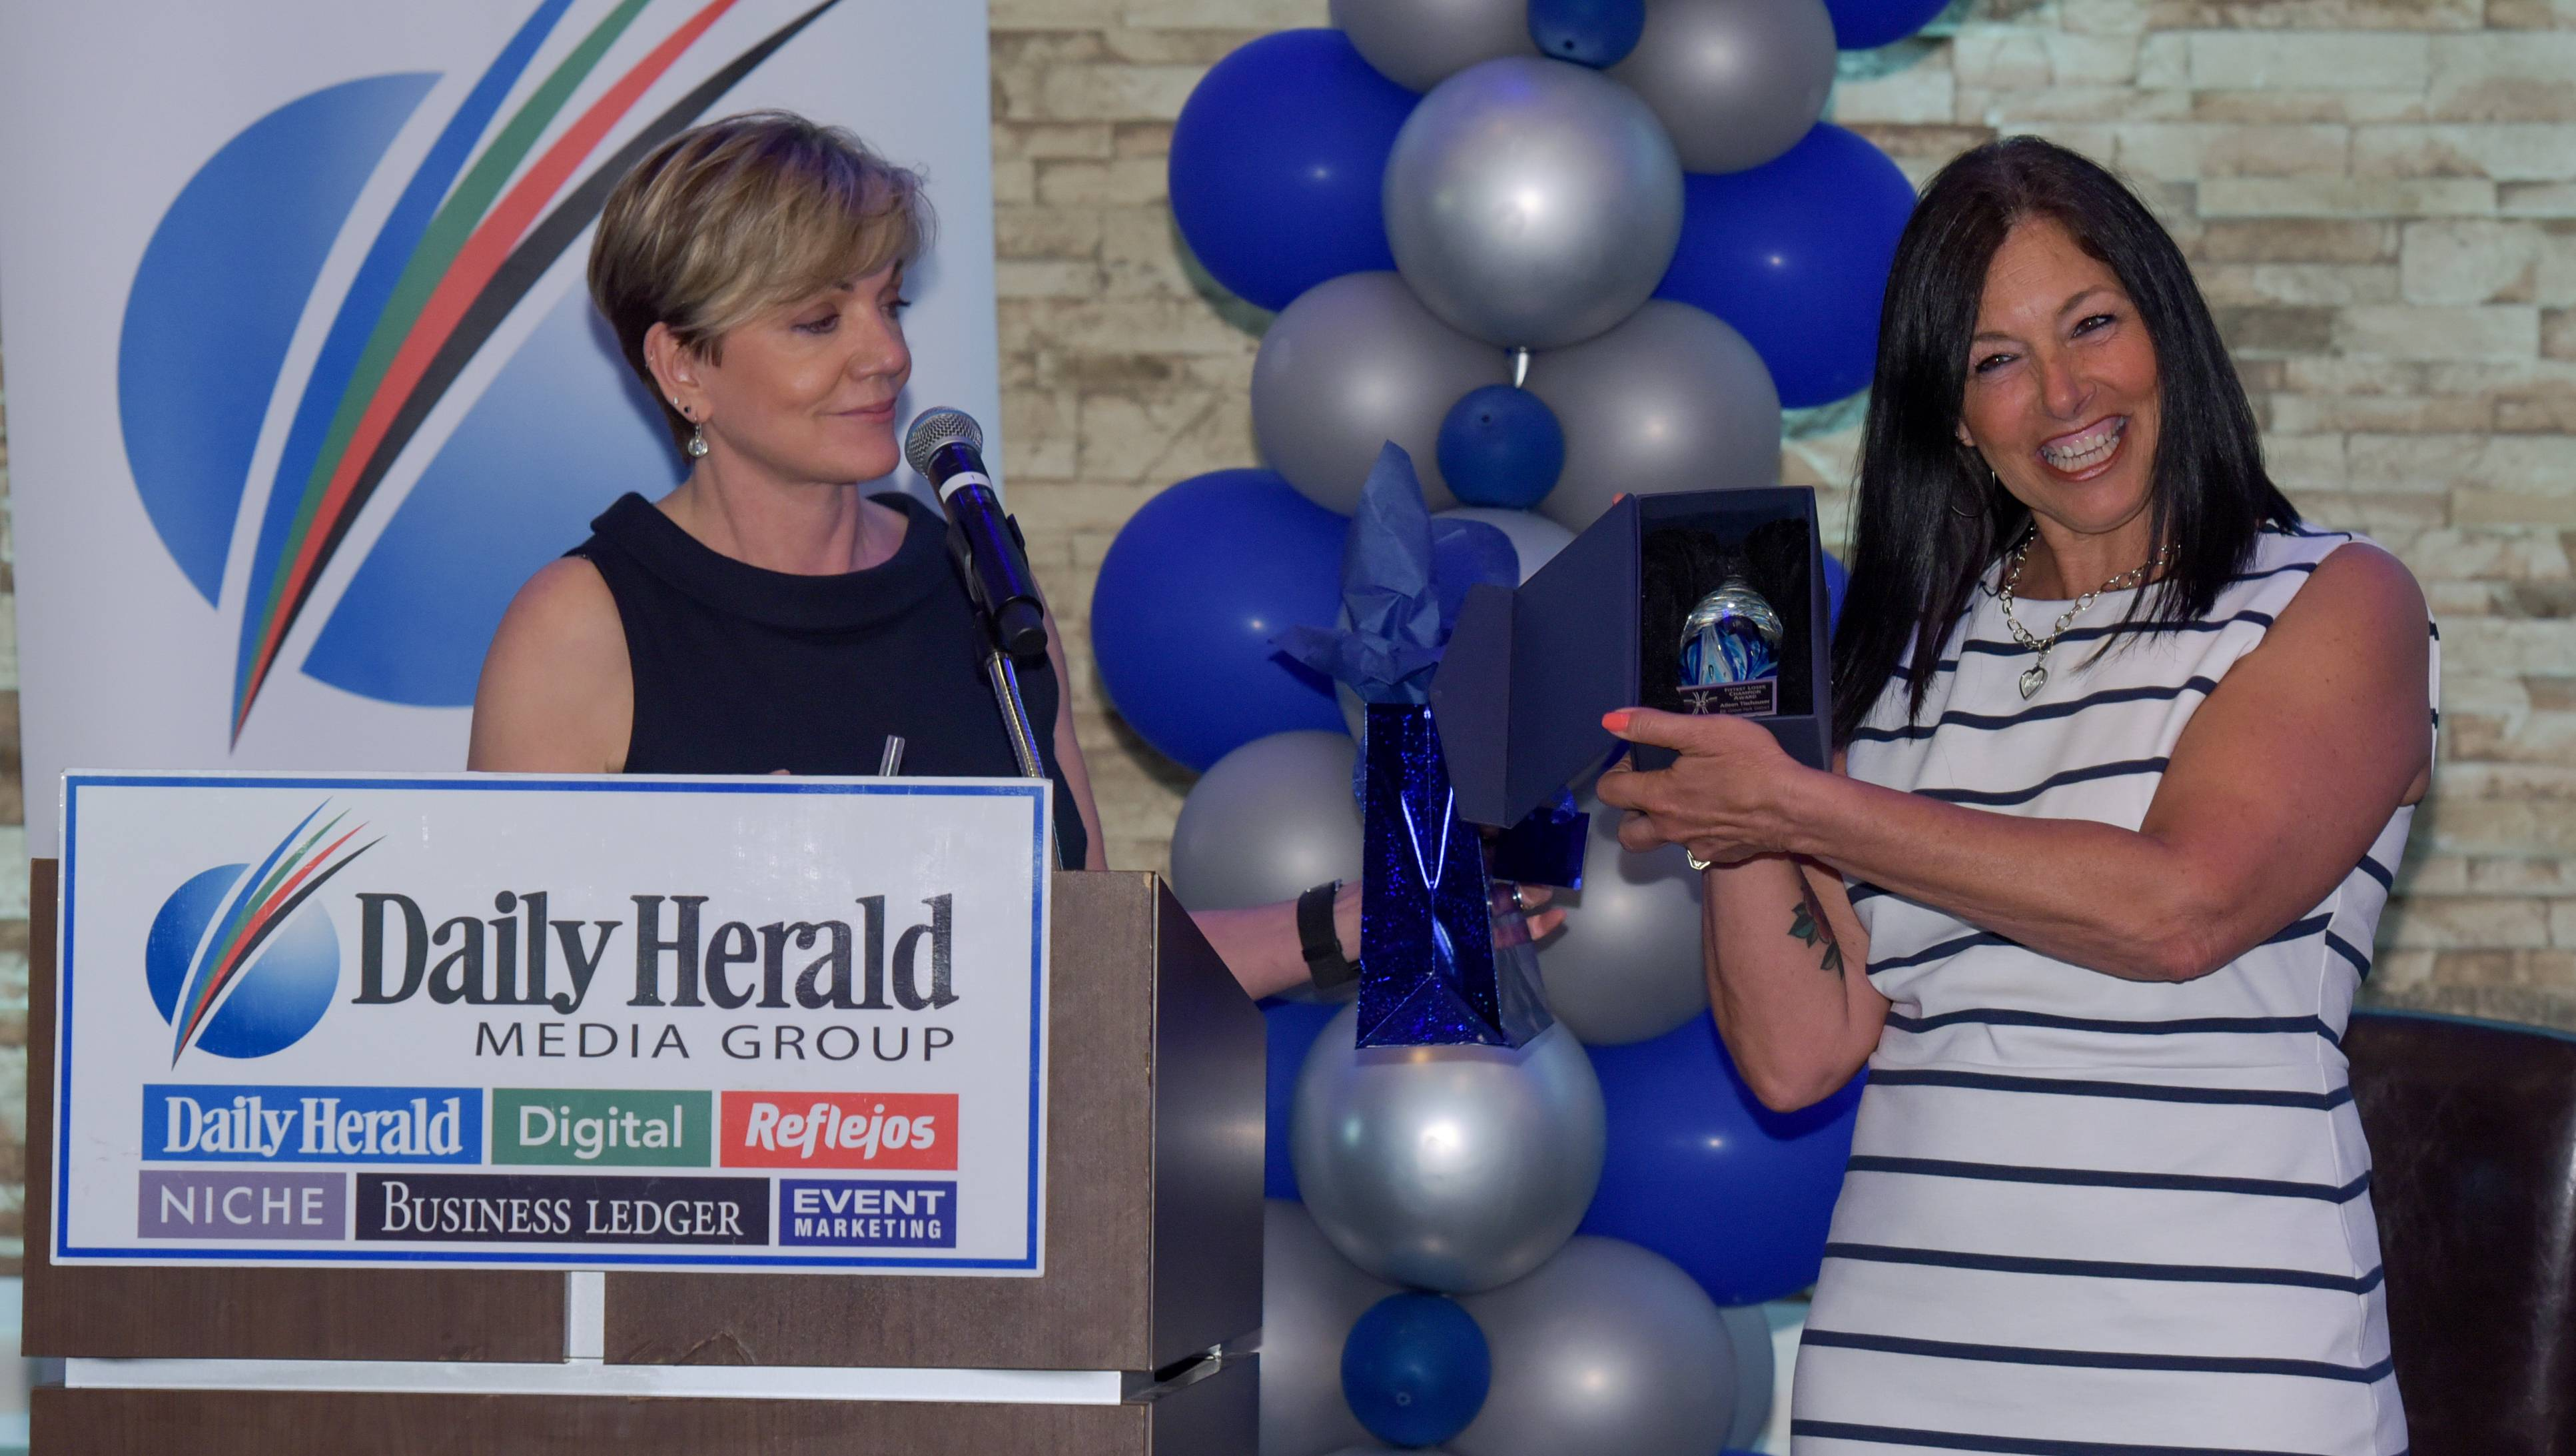 The Daily Herald Media Group's Eileen Brown presents the team captain award to Aileen Tischauser of Elk Grove Strong.